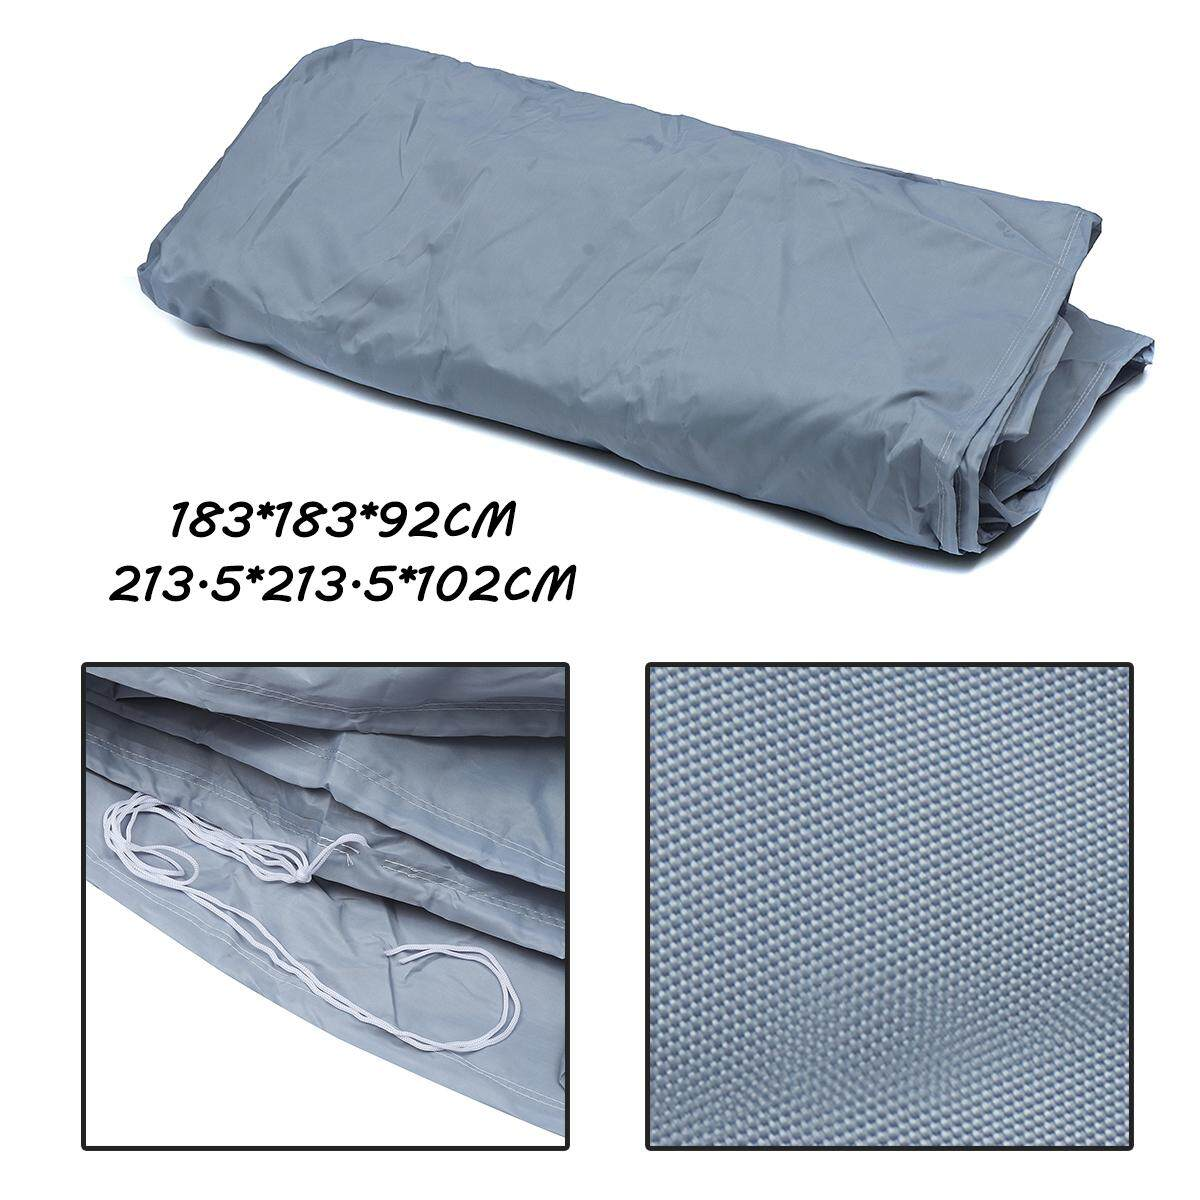 213.5*213.5*102cm Spa Tub Protective Dust Cover With Drawing String By Moonbeam.